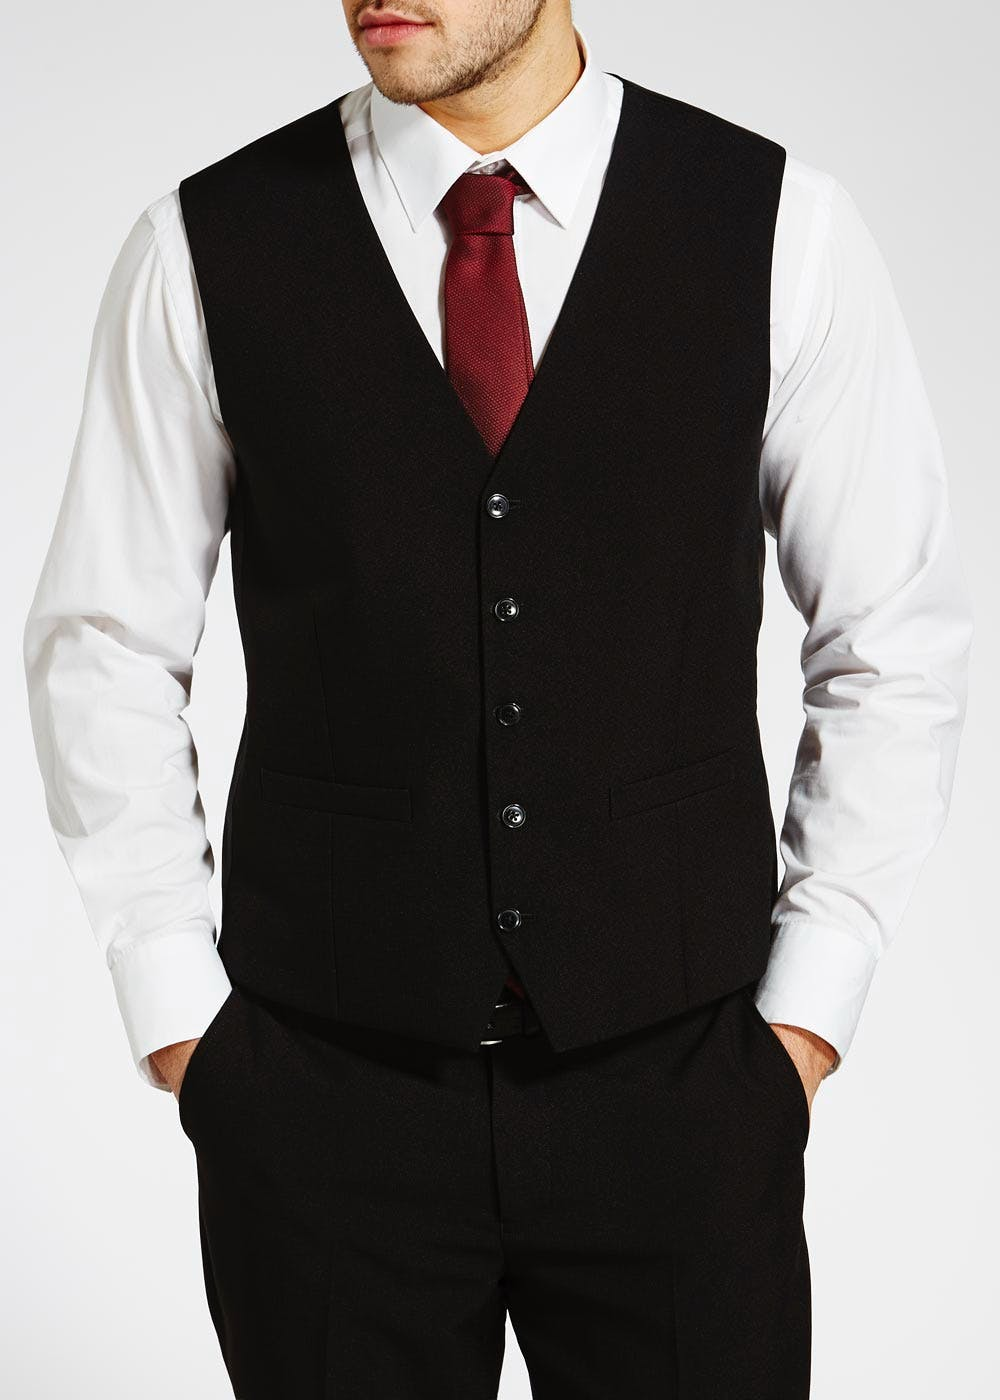 A few words about Historical Mens Vests. More than just the second layer of a suit, the vest signals the intrinsic fashion sense and finesse of the wearer.